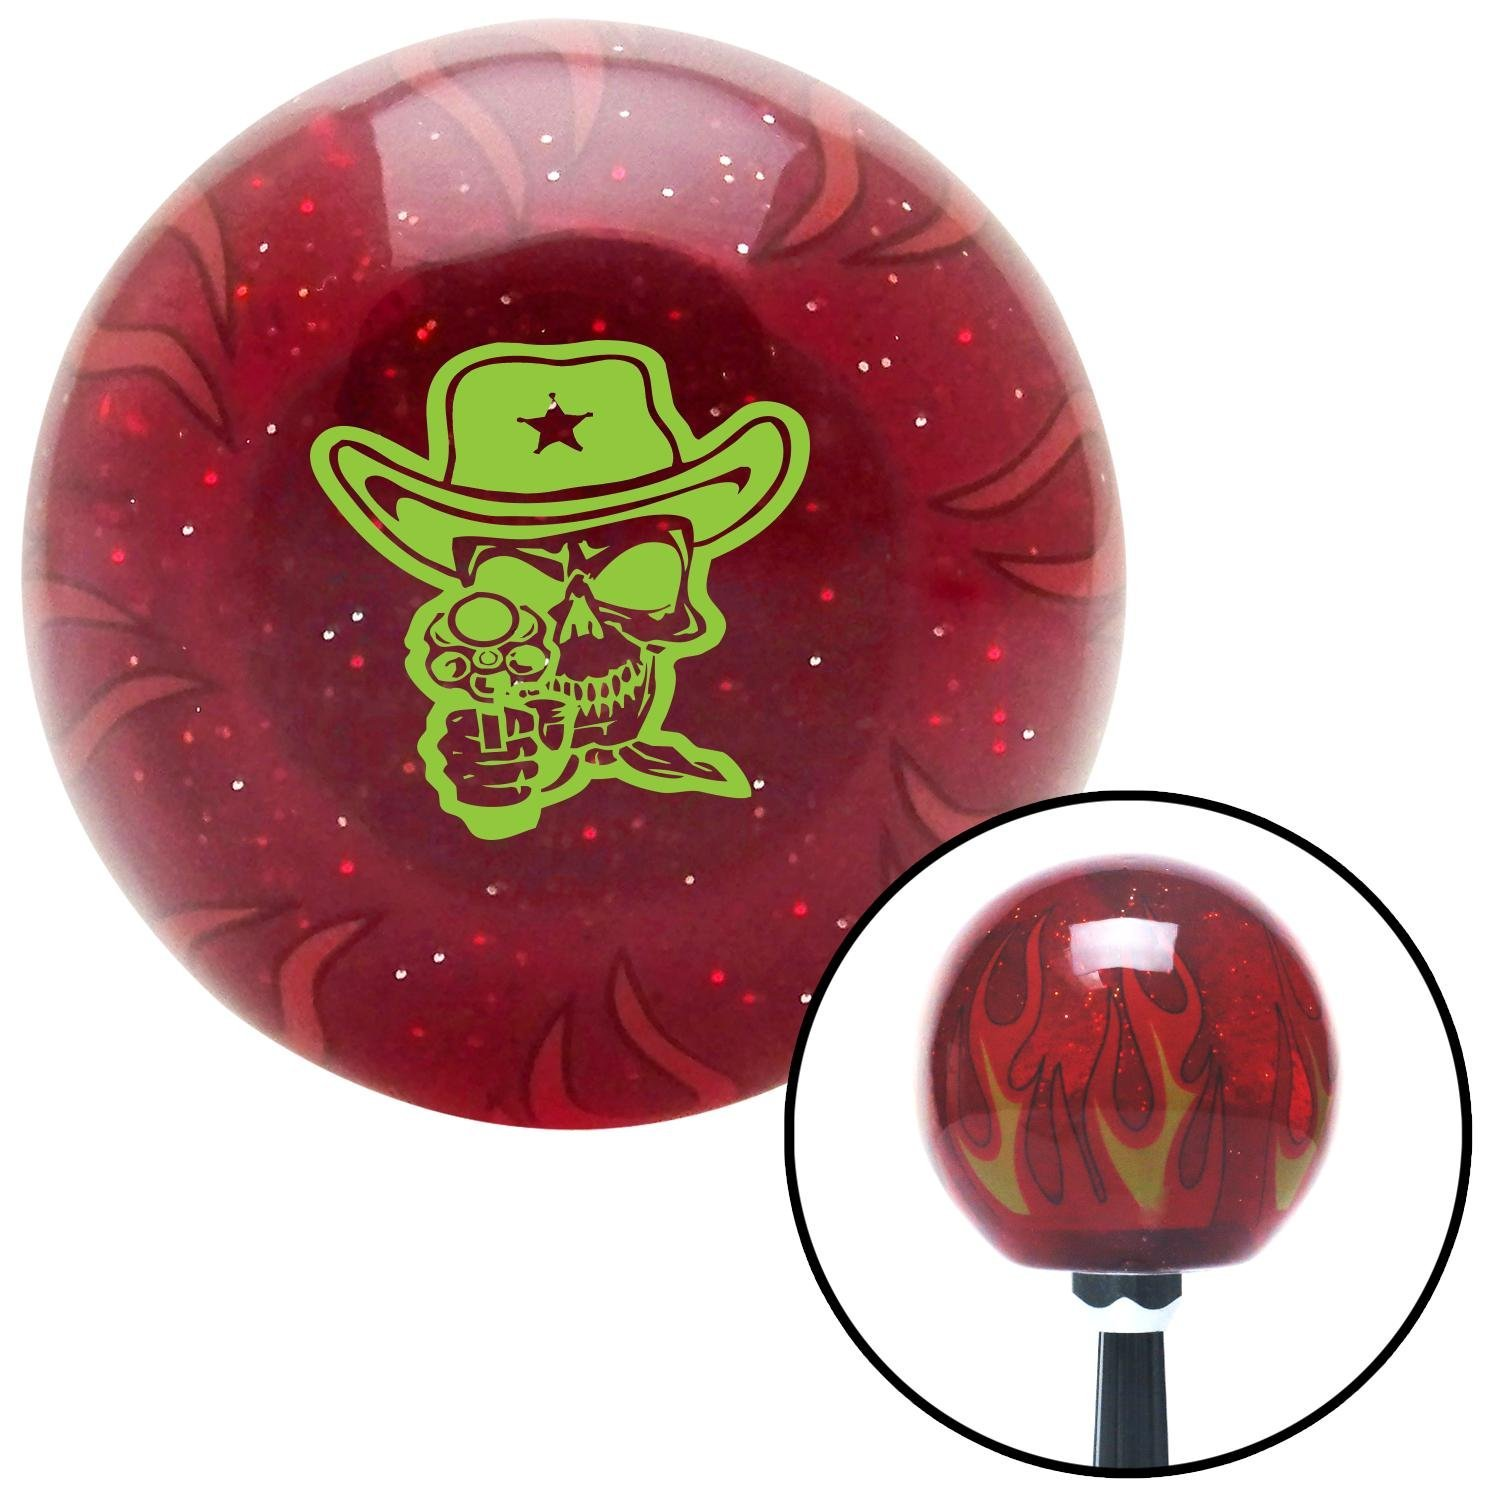 Green Cowboy Skull American Shifter 243526 Red Flame Metal Flake Shift Knob with M16 x 1.5 Insert